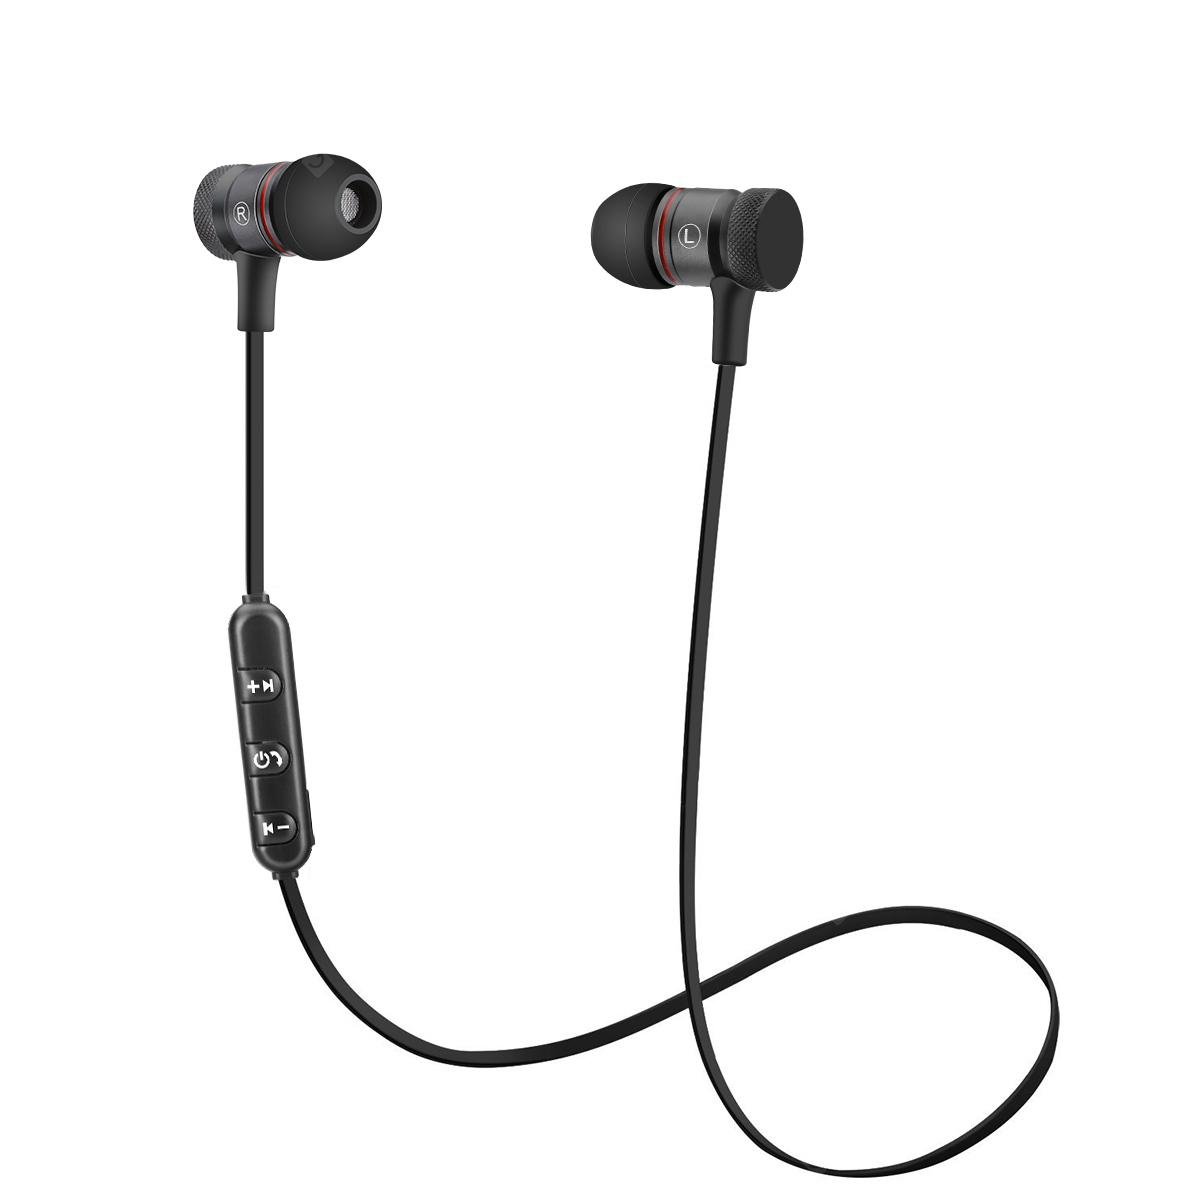 HB-21 neck-mounted headphones - BLACK